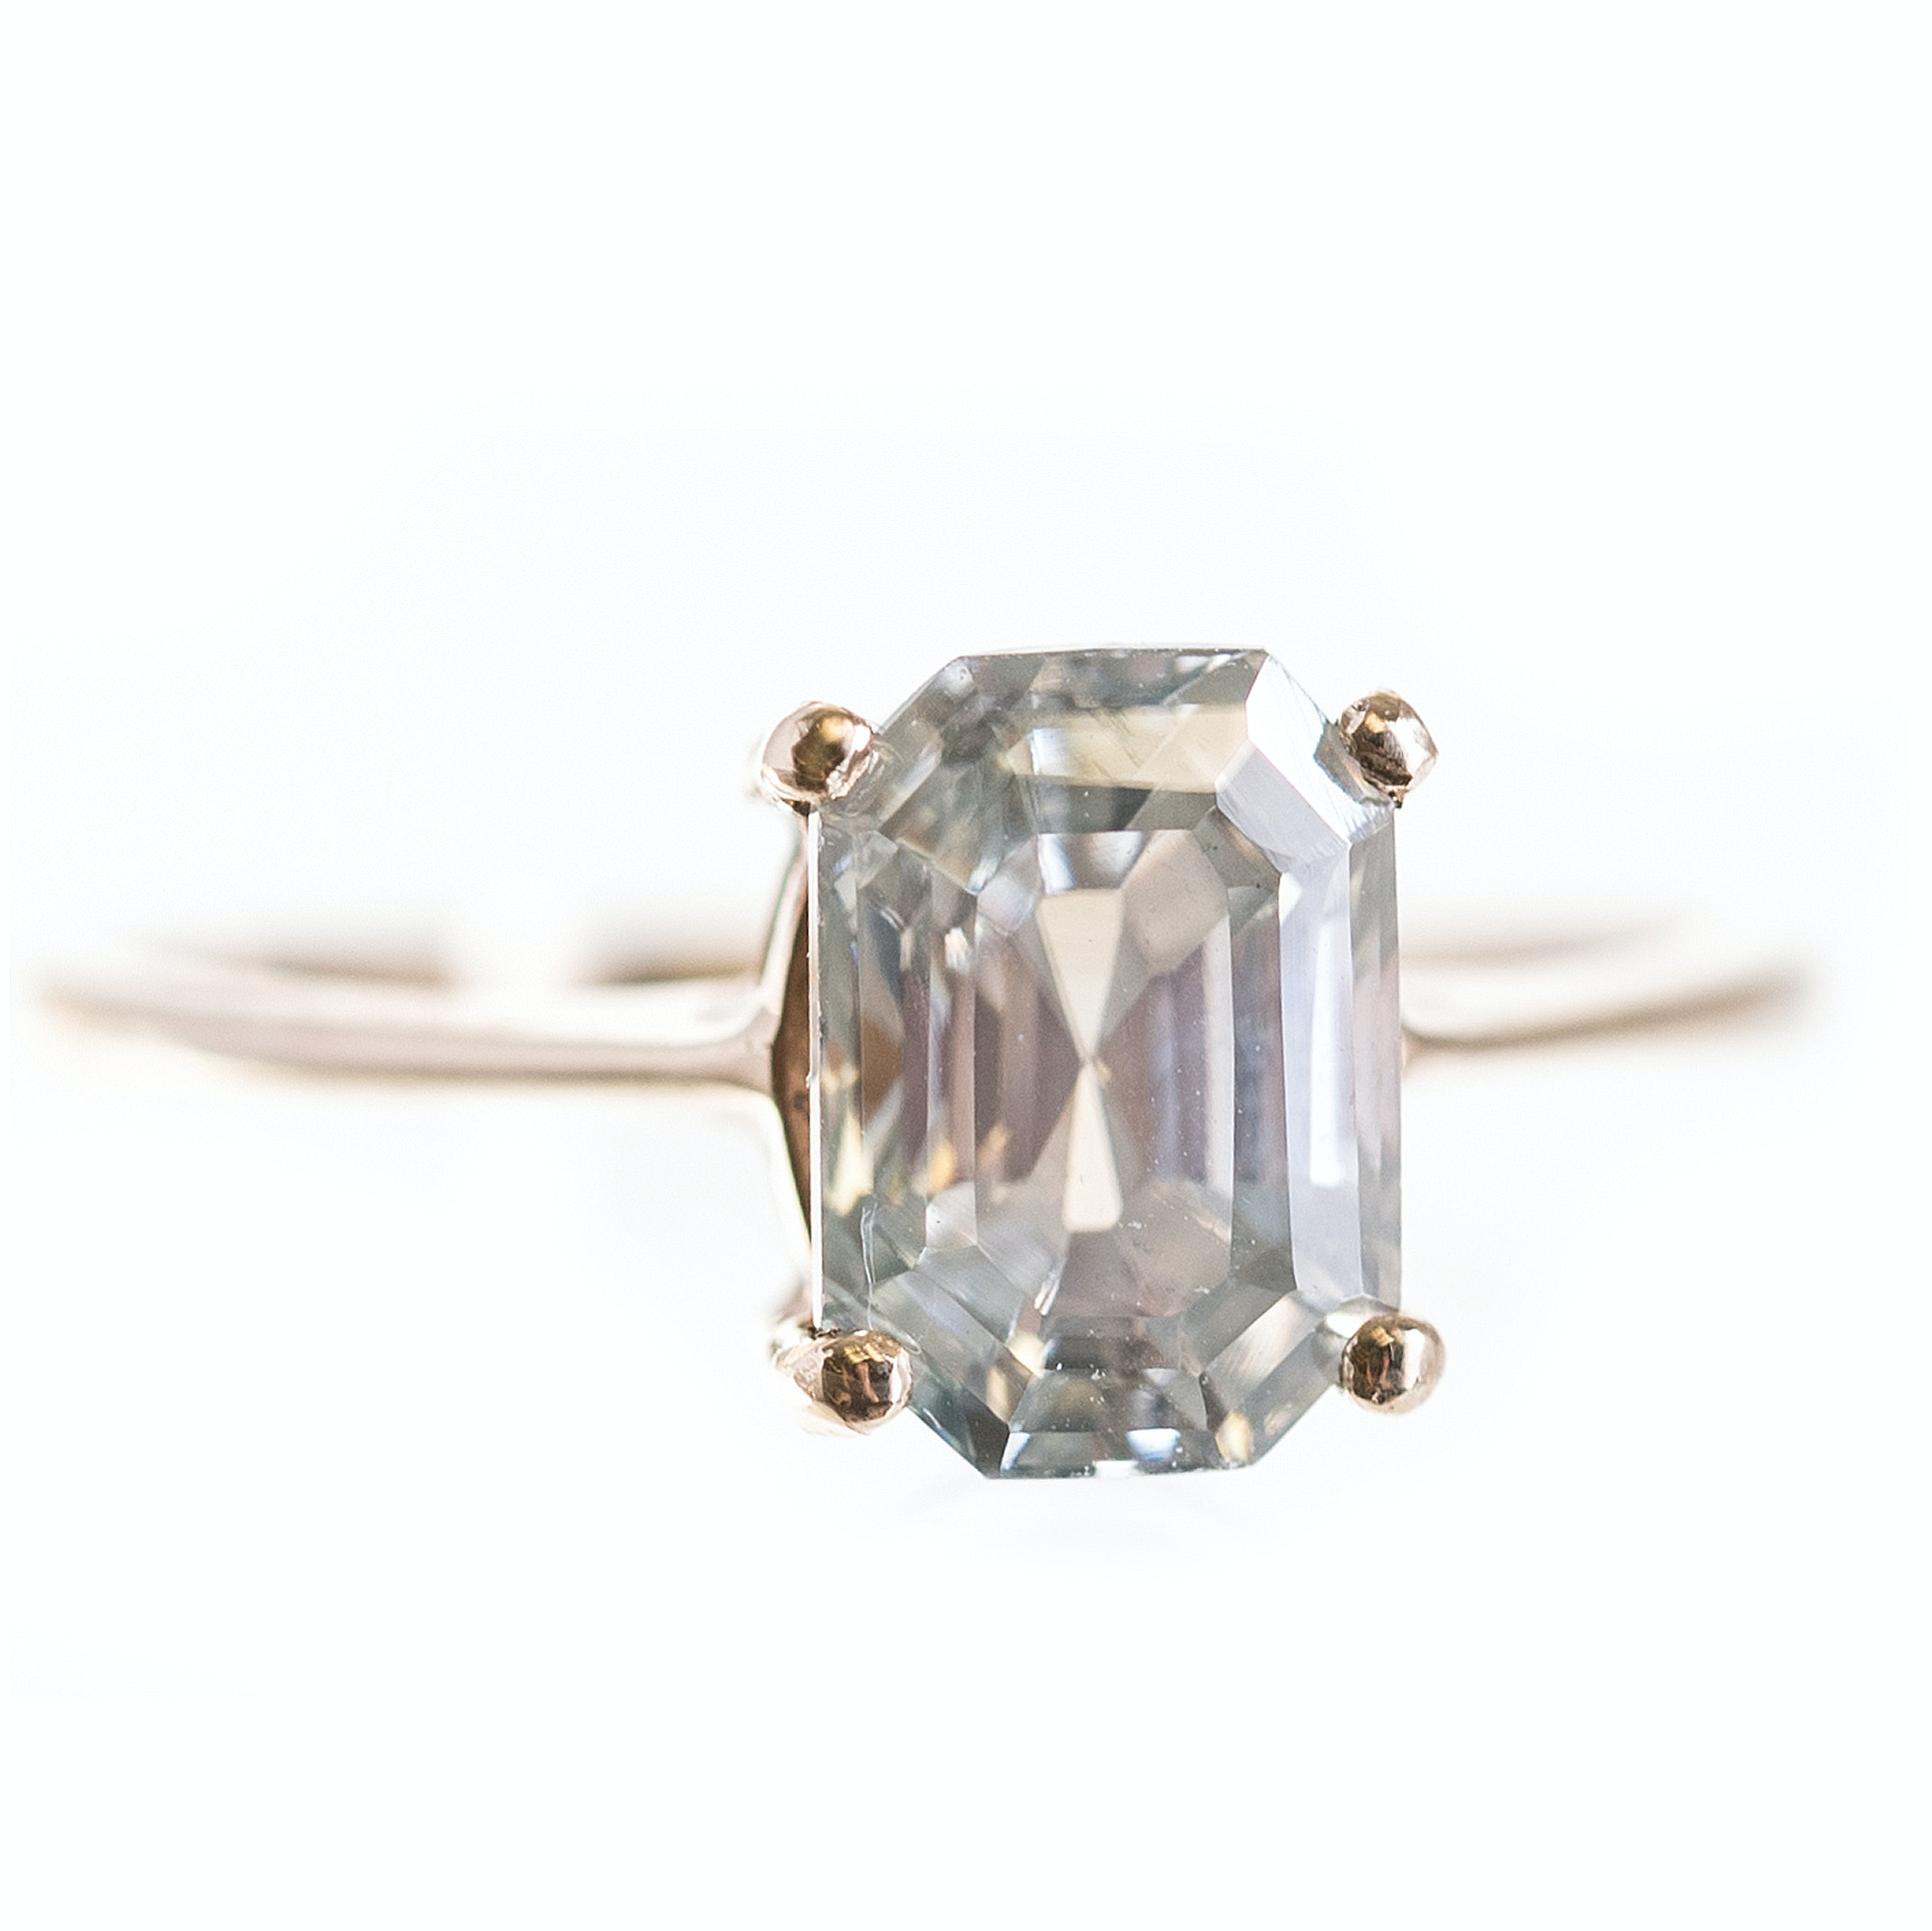 10K Yellow Gold Moissanite Ring